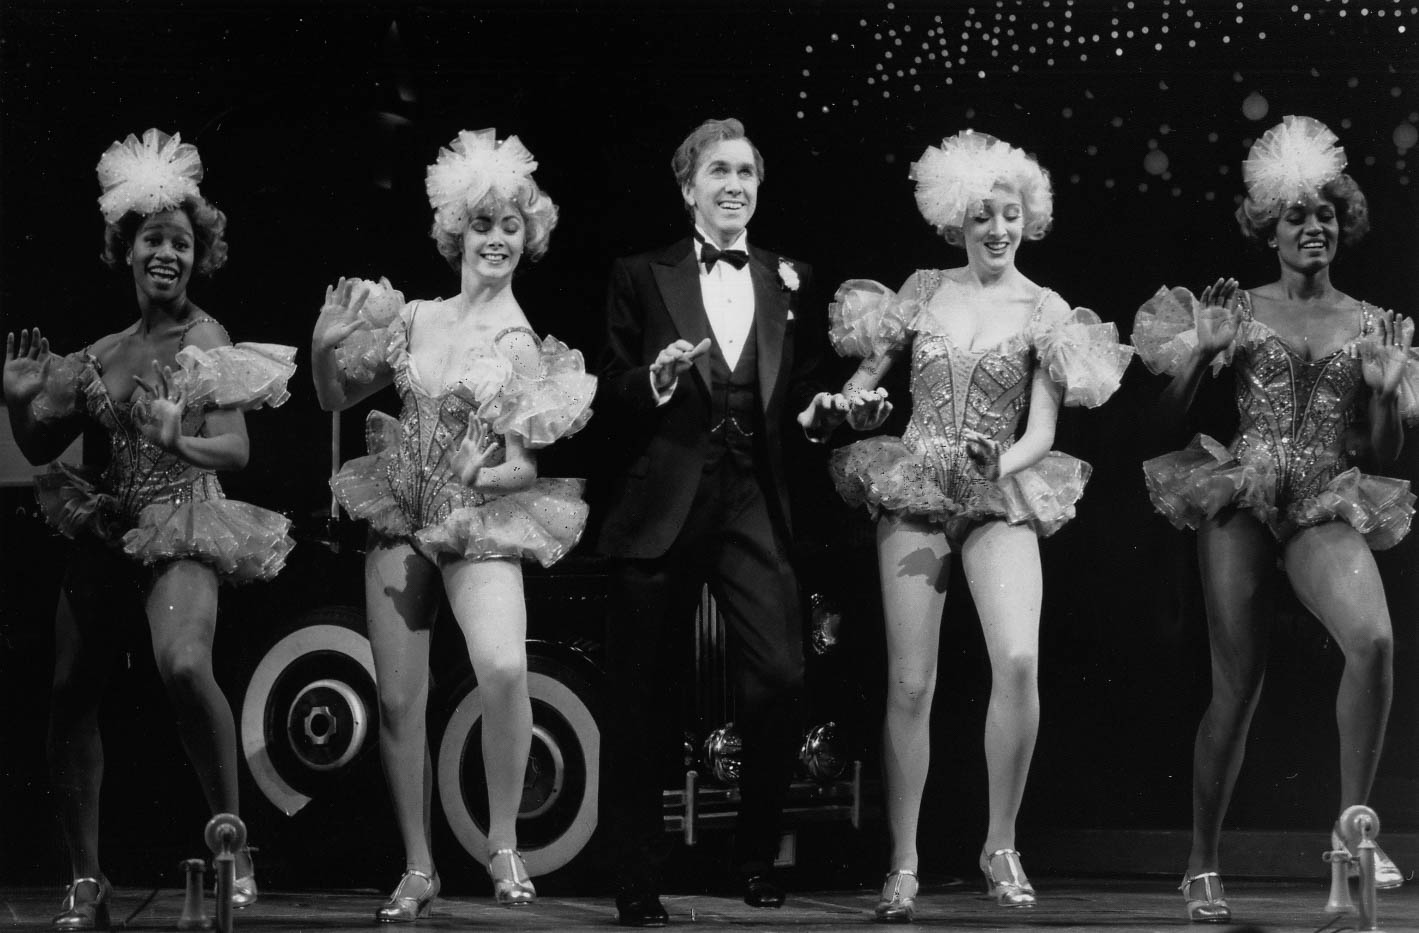 """Black and white photo of Harry Groener (in a tux) and the female ensemble (dressed in frilly pink costumes). Judine Hawkins Richard, Ida Henry, Harry Groener, Jean Marie, Salome Mazard dance to """"I Can't Be Bothered Now""""."""